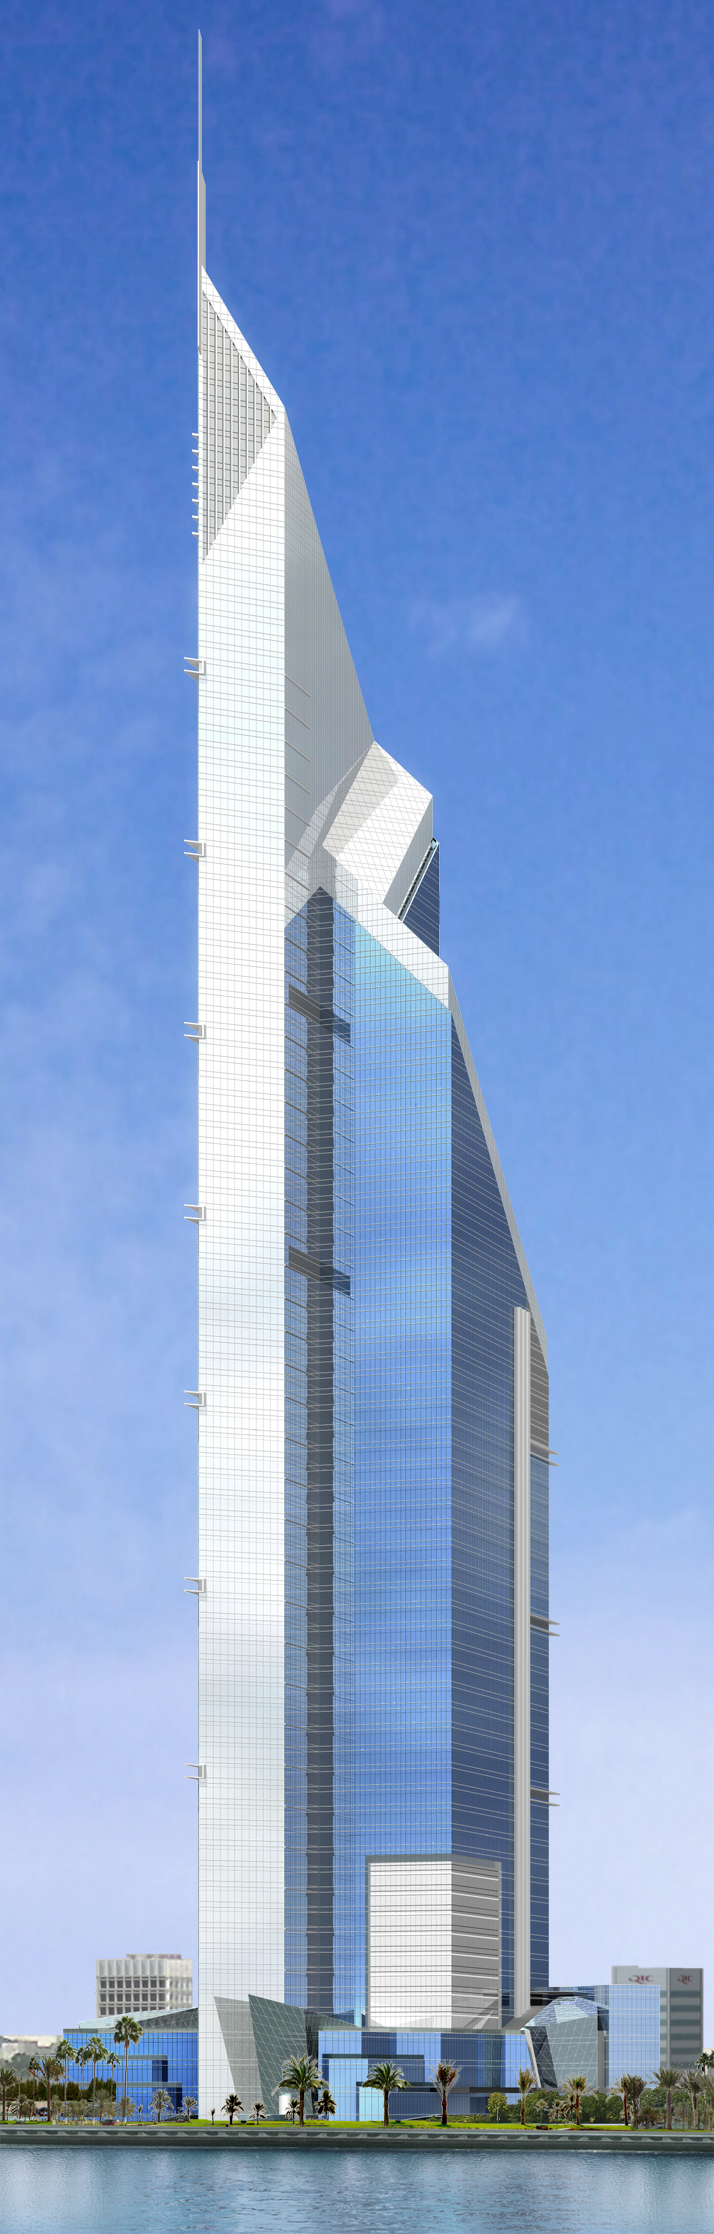 Dubai Tower Doha Qatar - Architizer